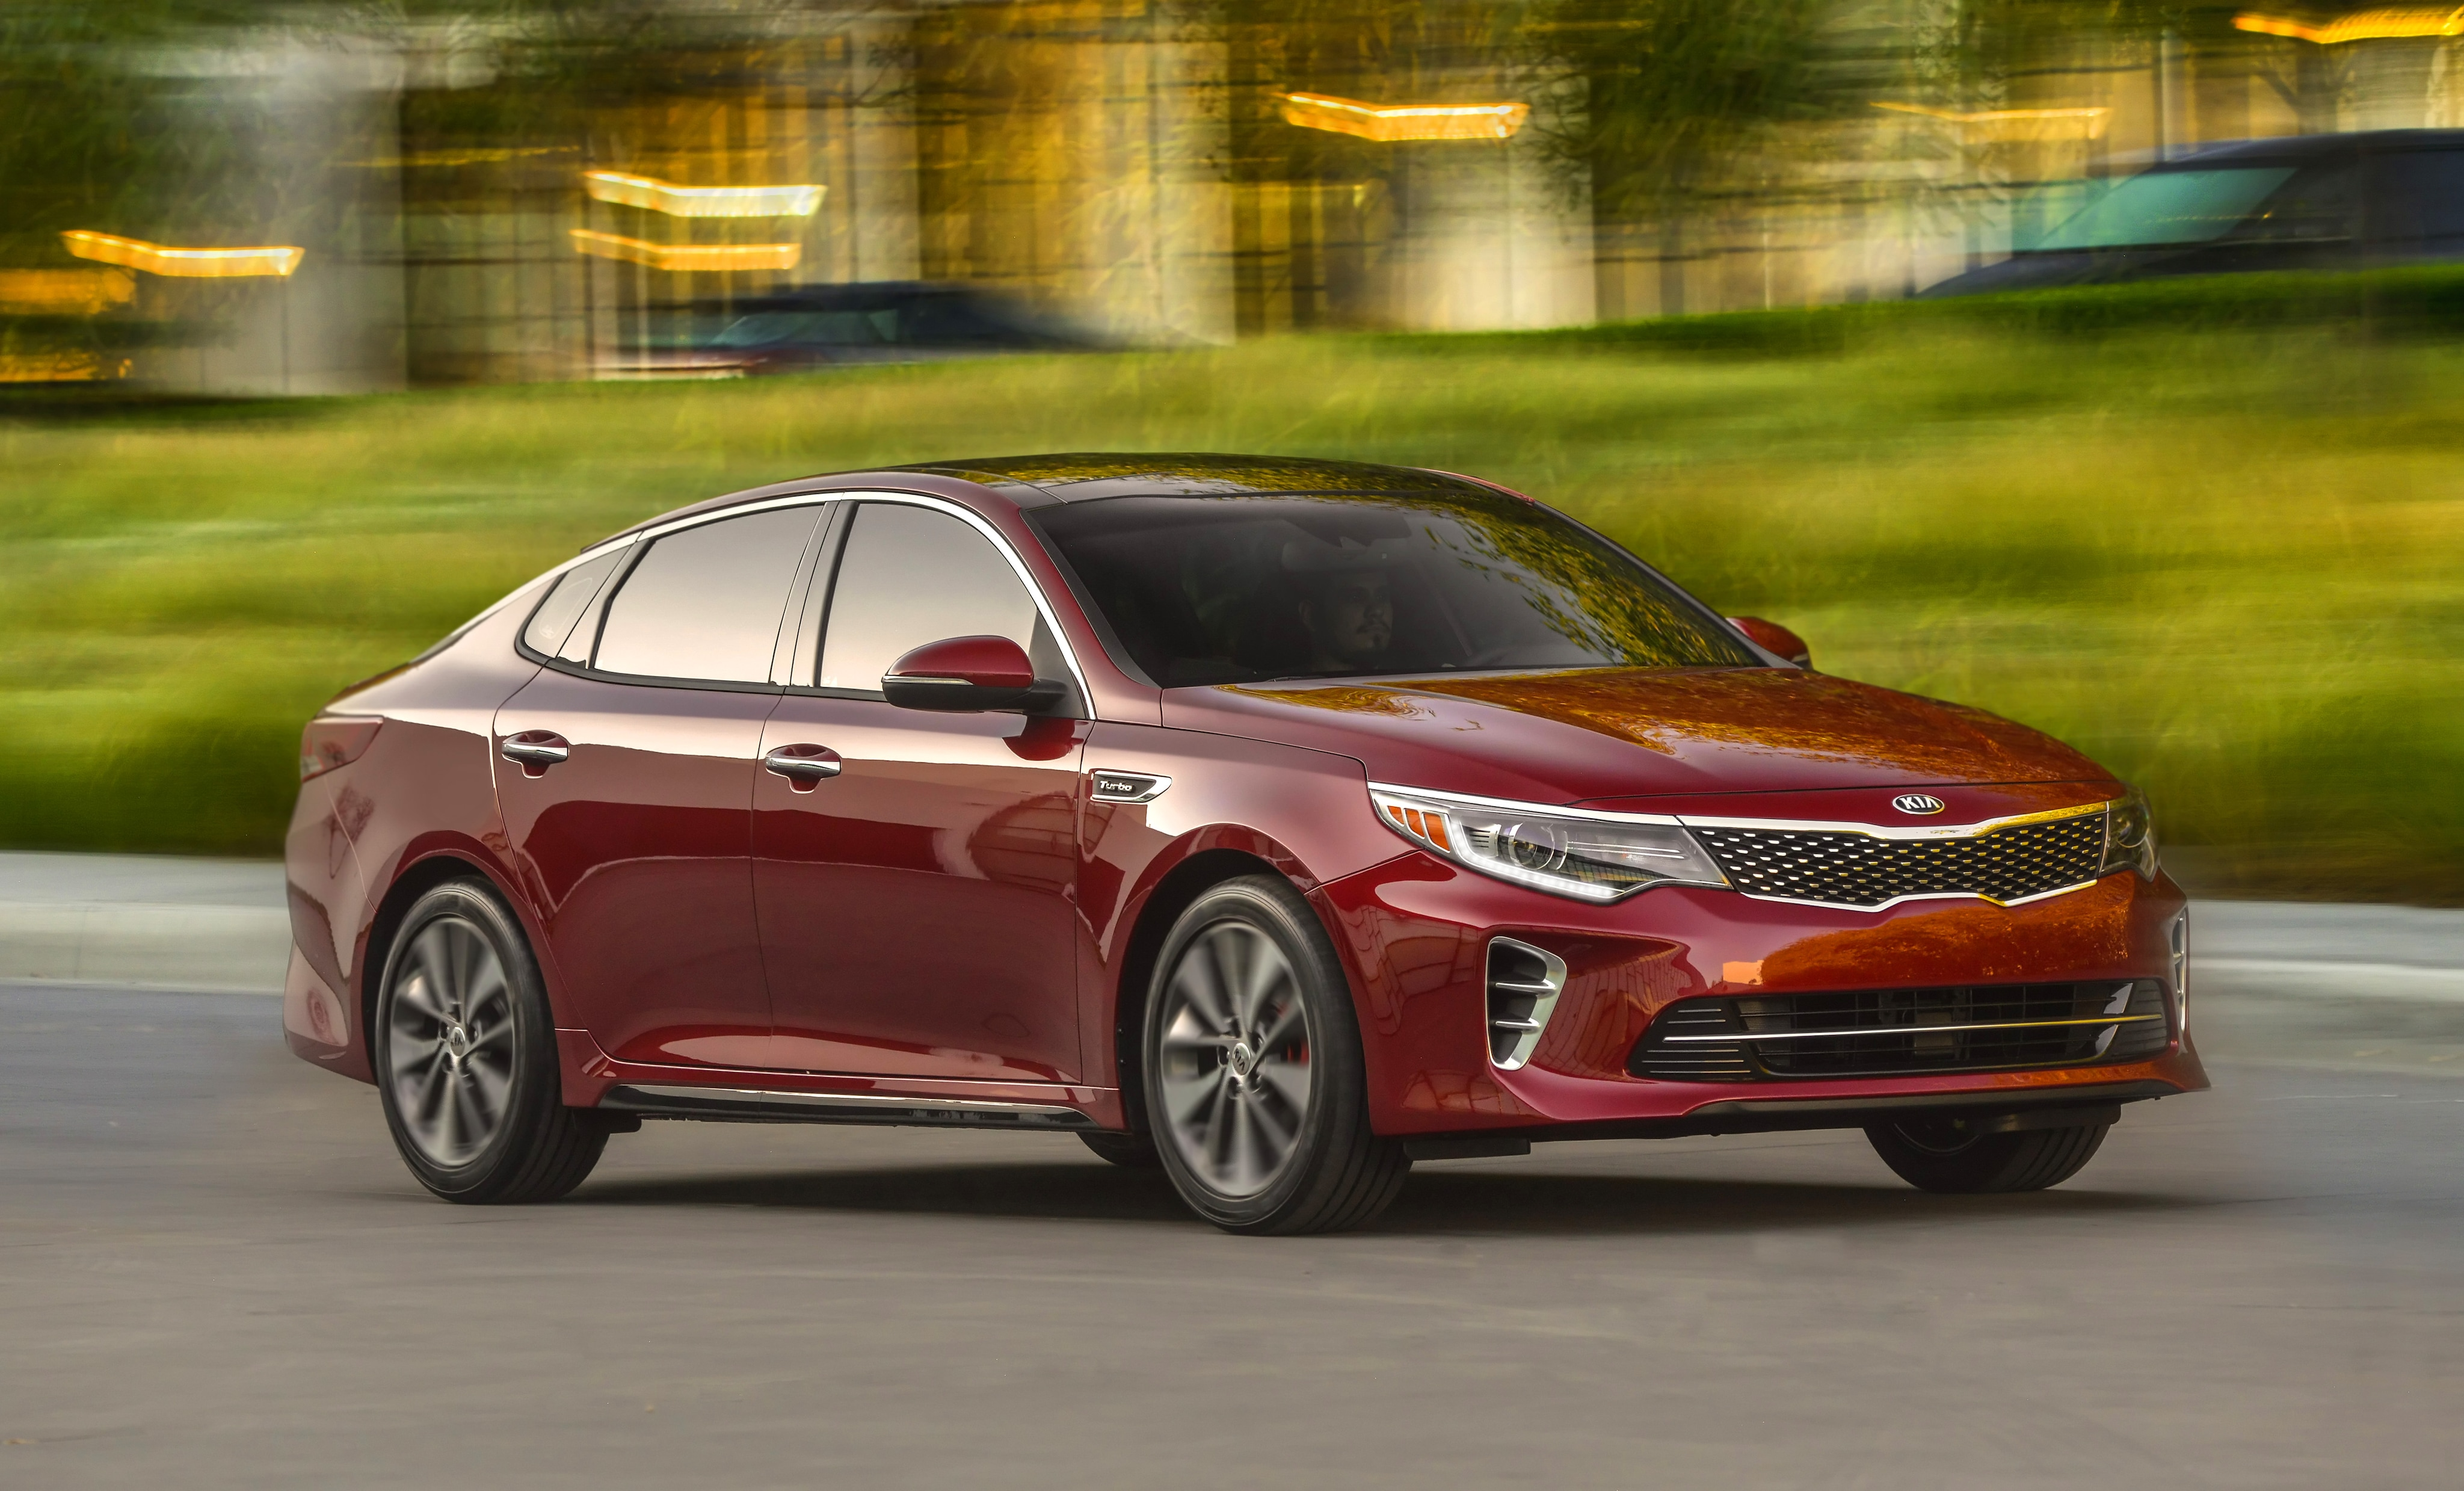 ex carfax lx hybrid used optima owner certified carsforsale kia sale for gdi car full exterior